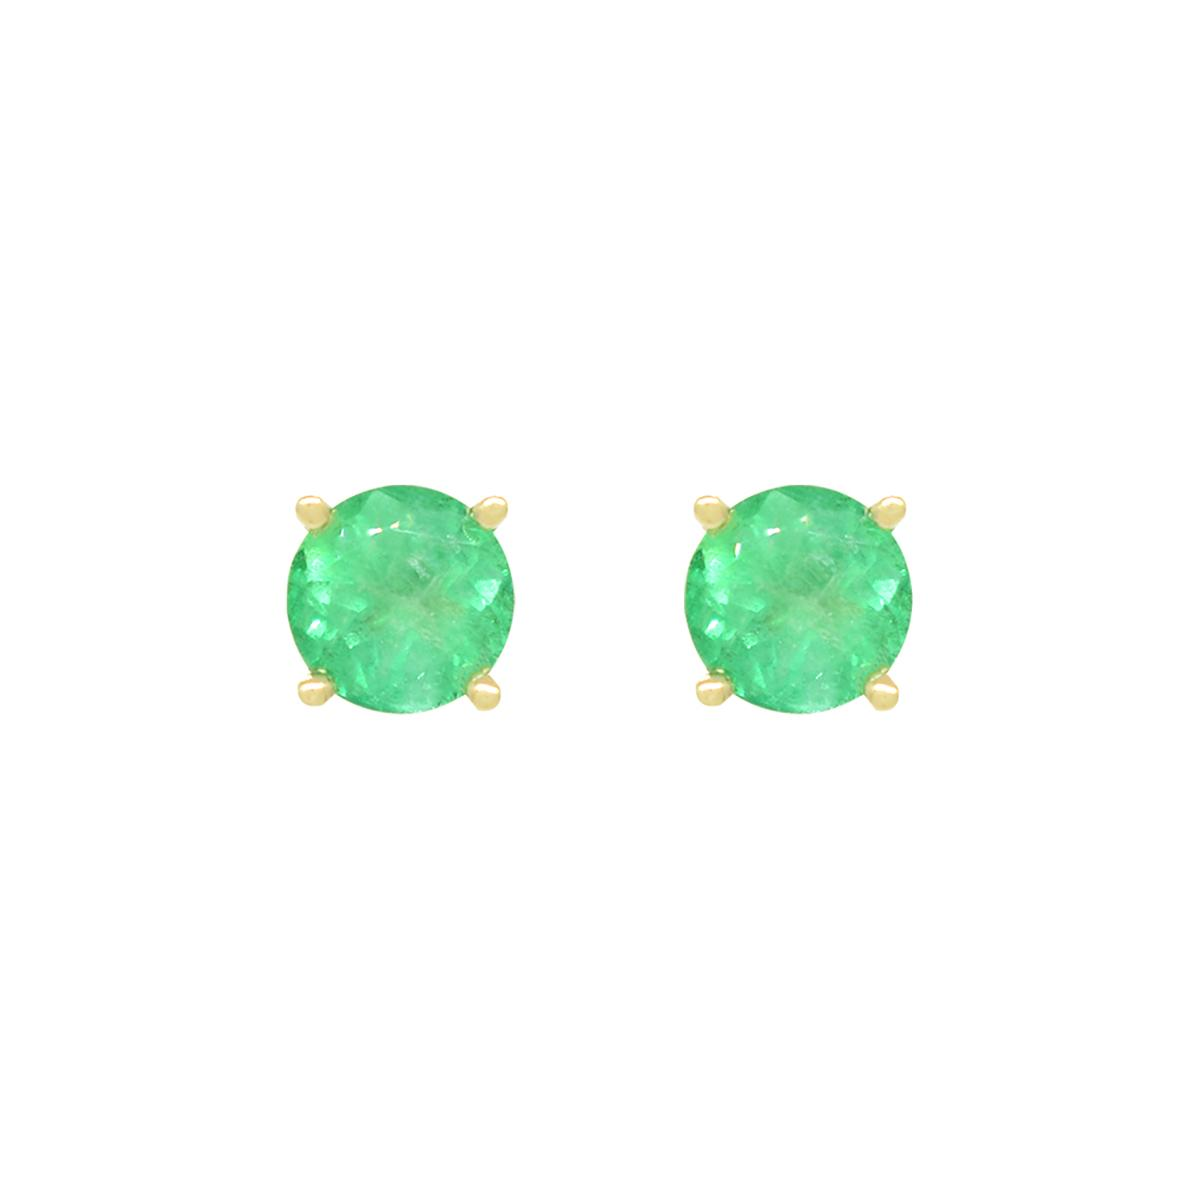 stud-emerald-earrings-in-18k-yellow-gold-with-round-cut-natural-emeralds